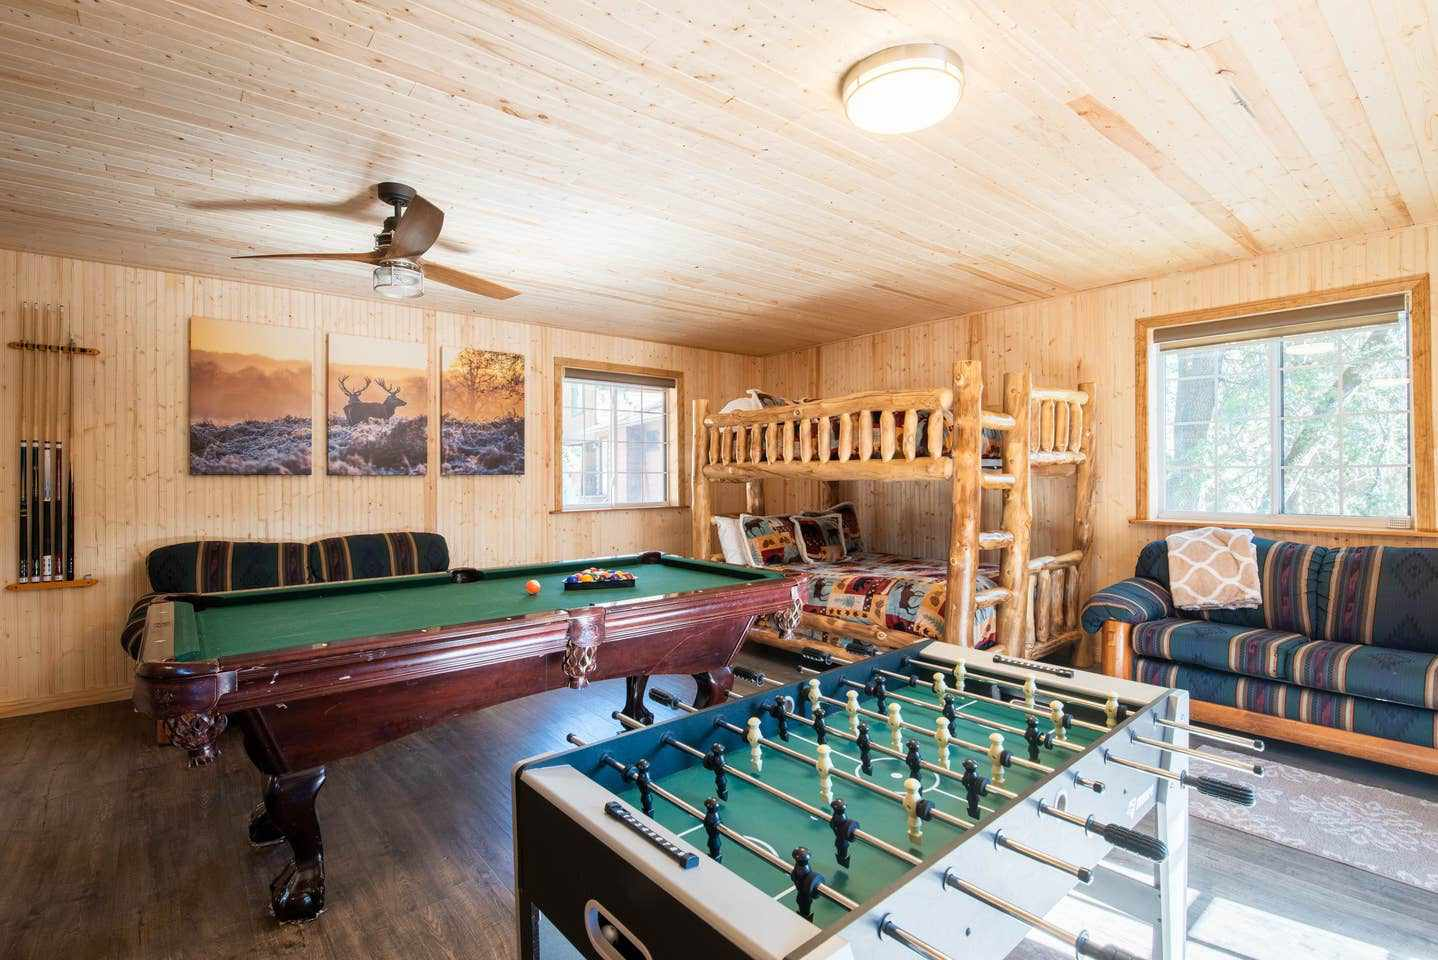 4-Bedroom Cabin with Game Room